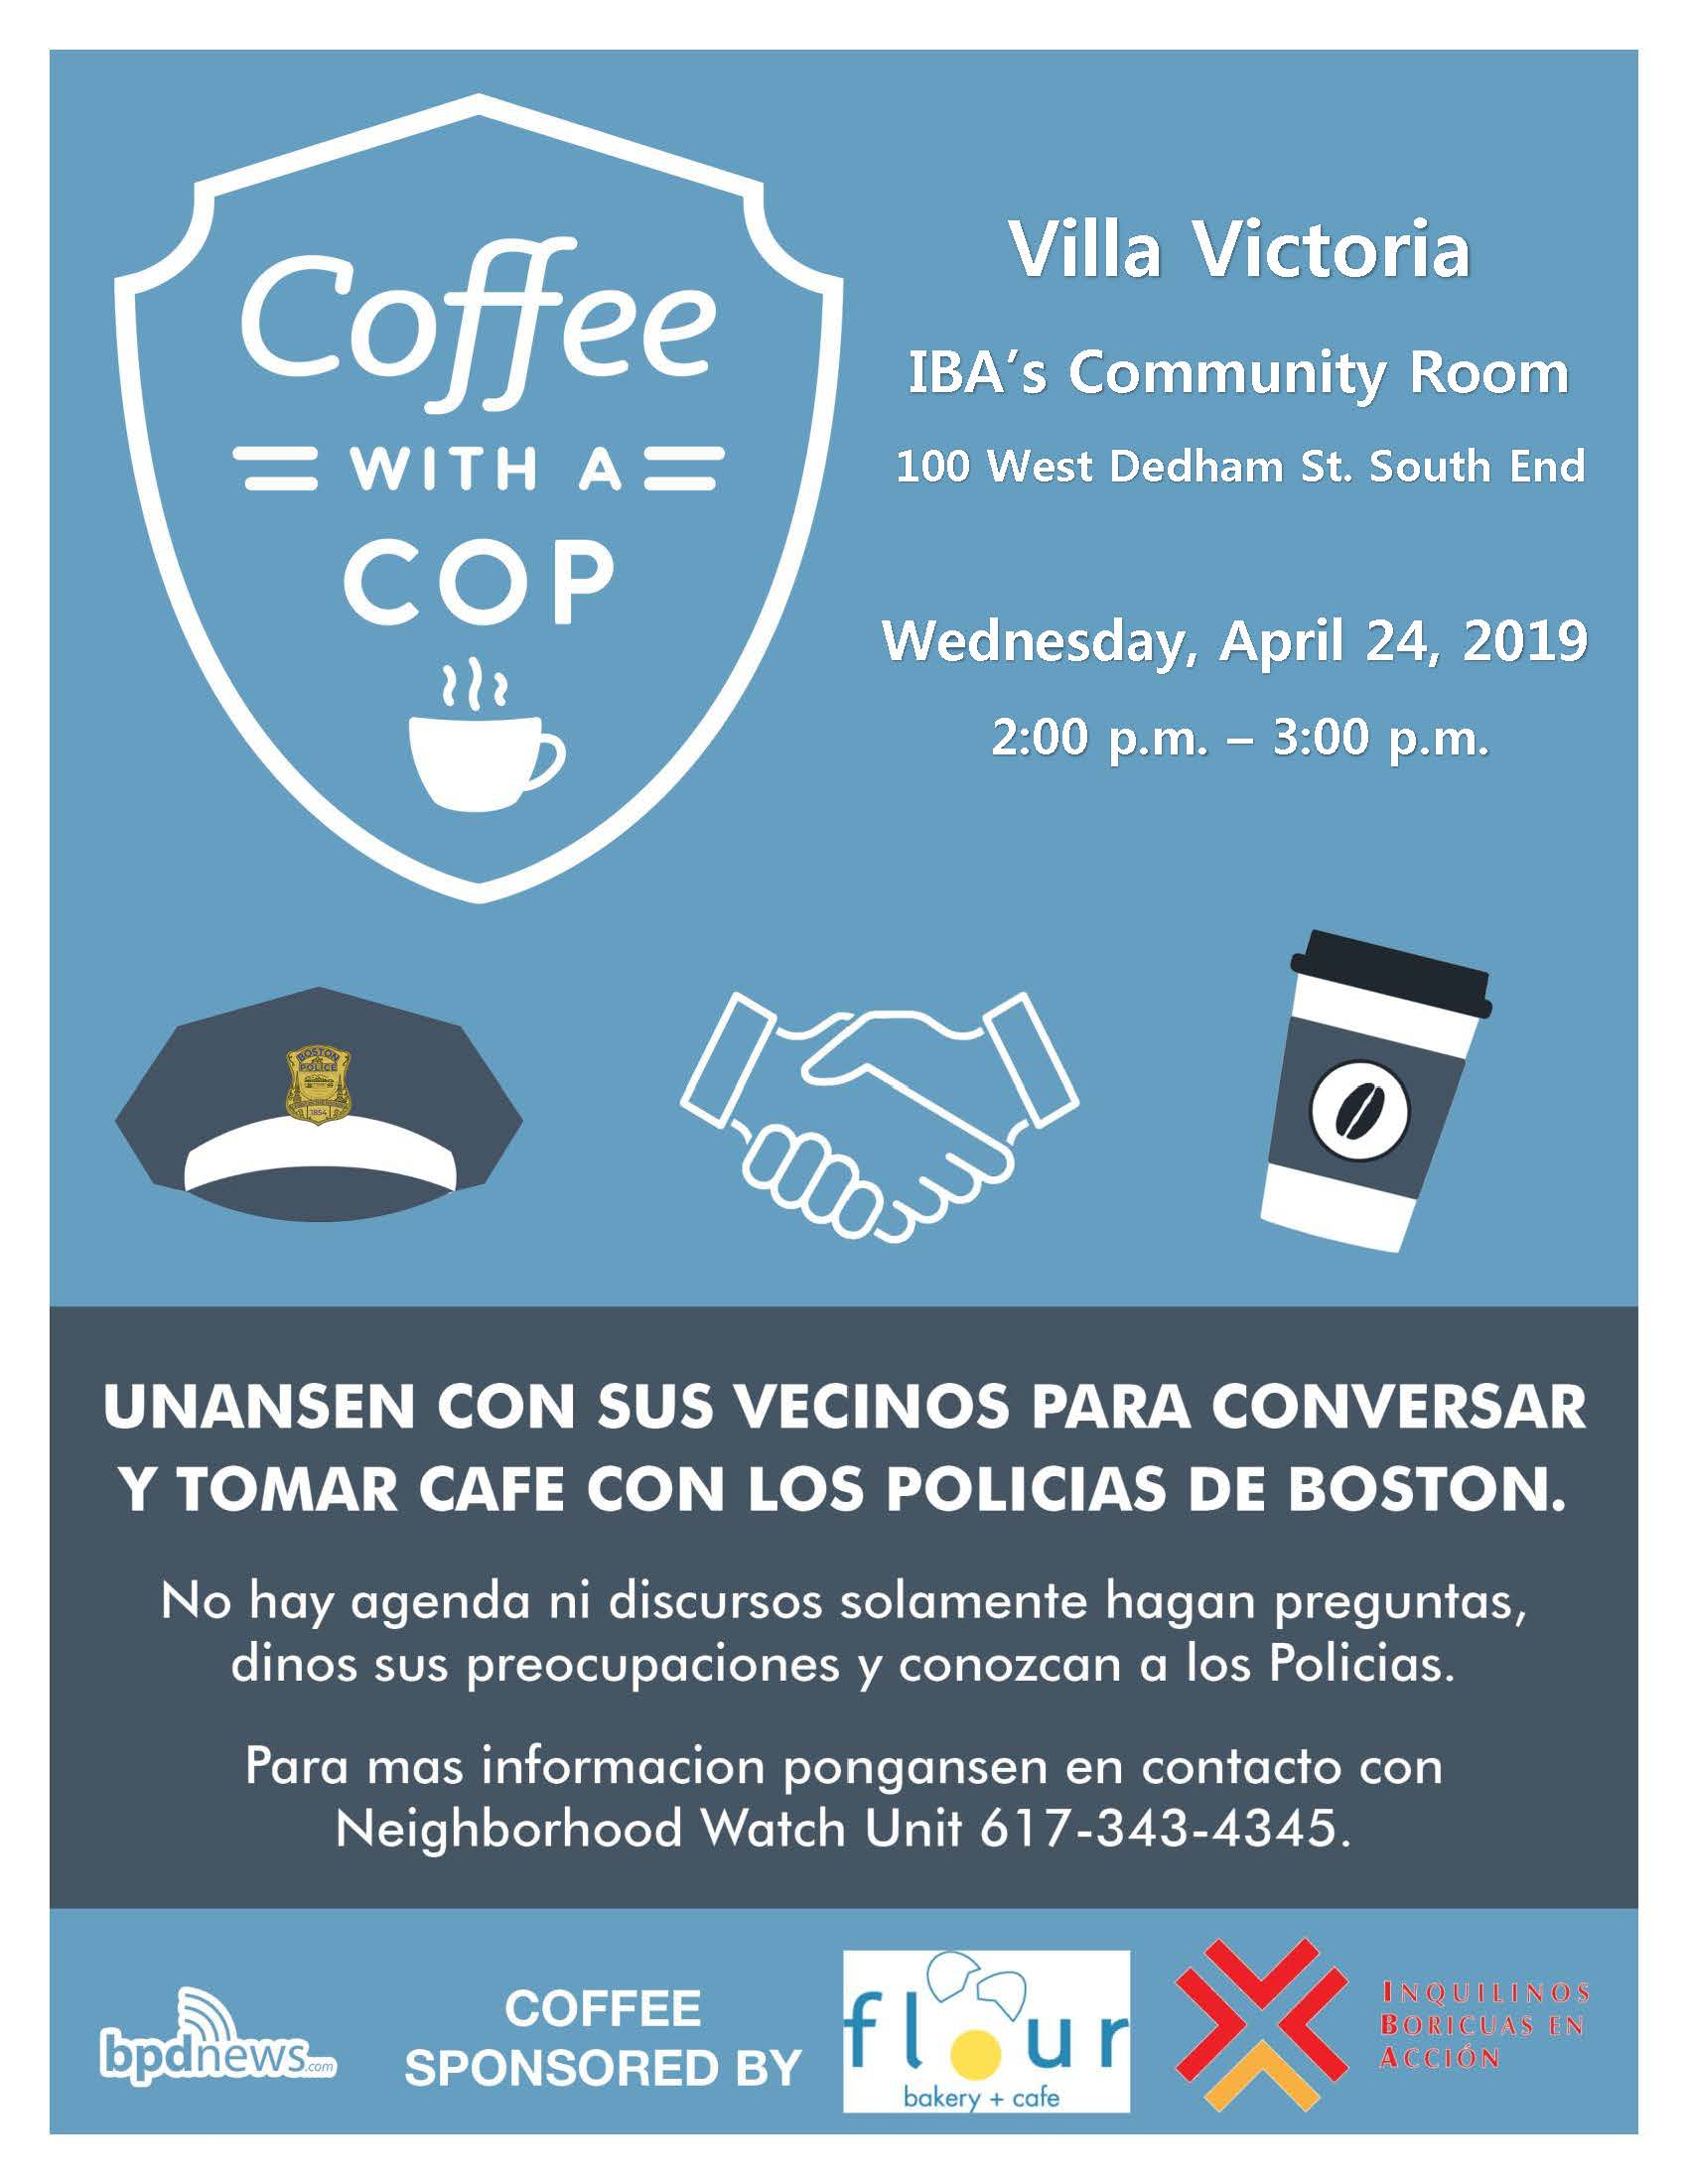 Coffee with a Cop Villa Victoria 2019 (spanish) (2).jpg